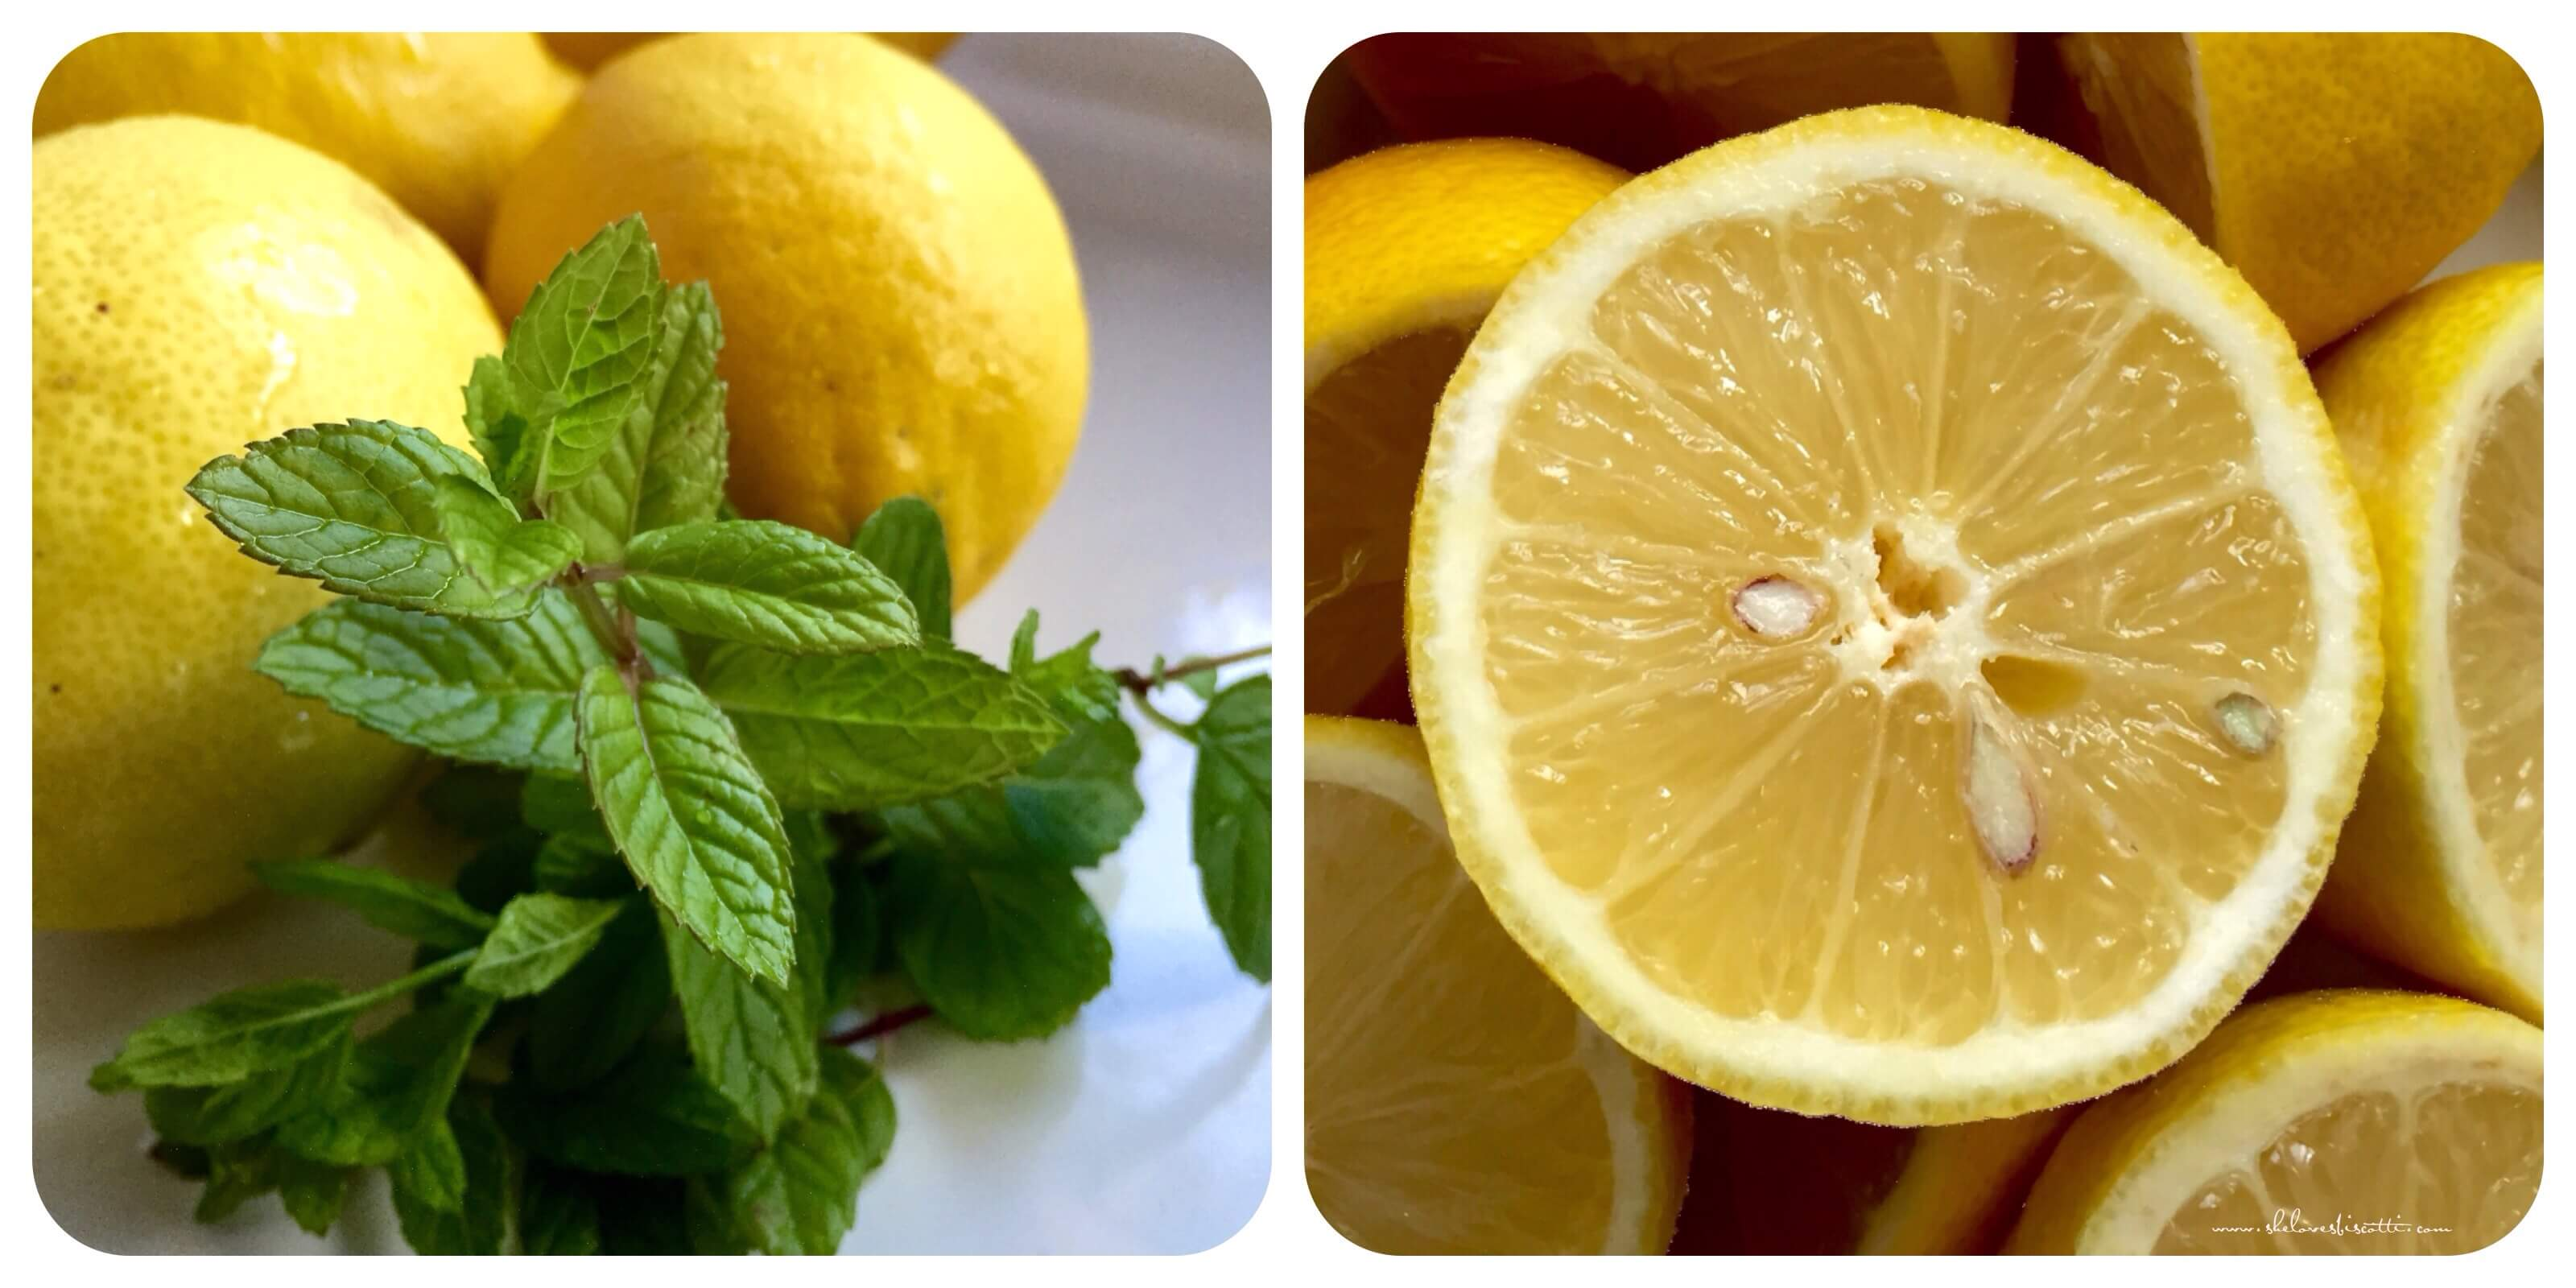 lemons and mint required to make lemon ice.